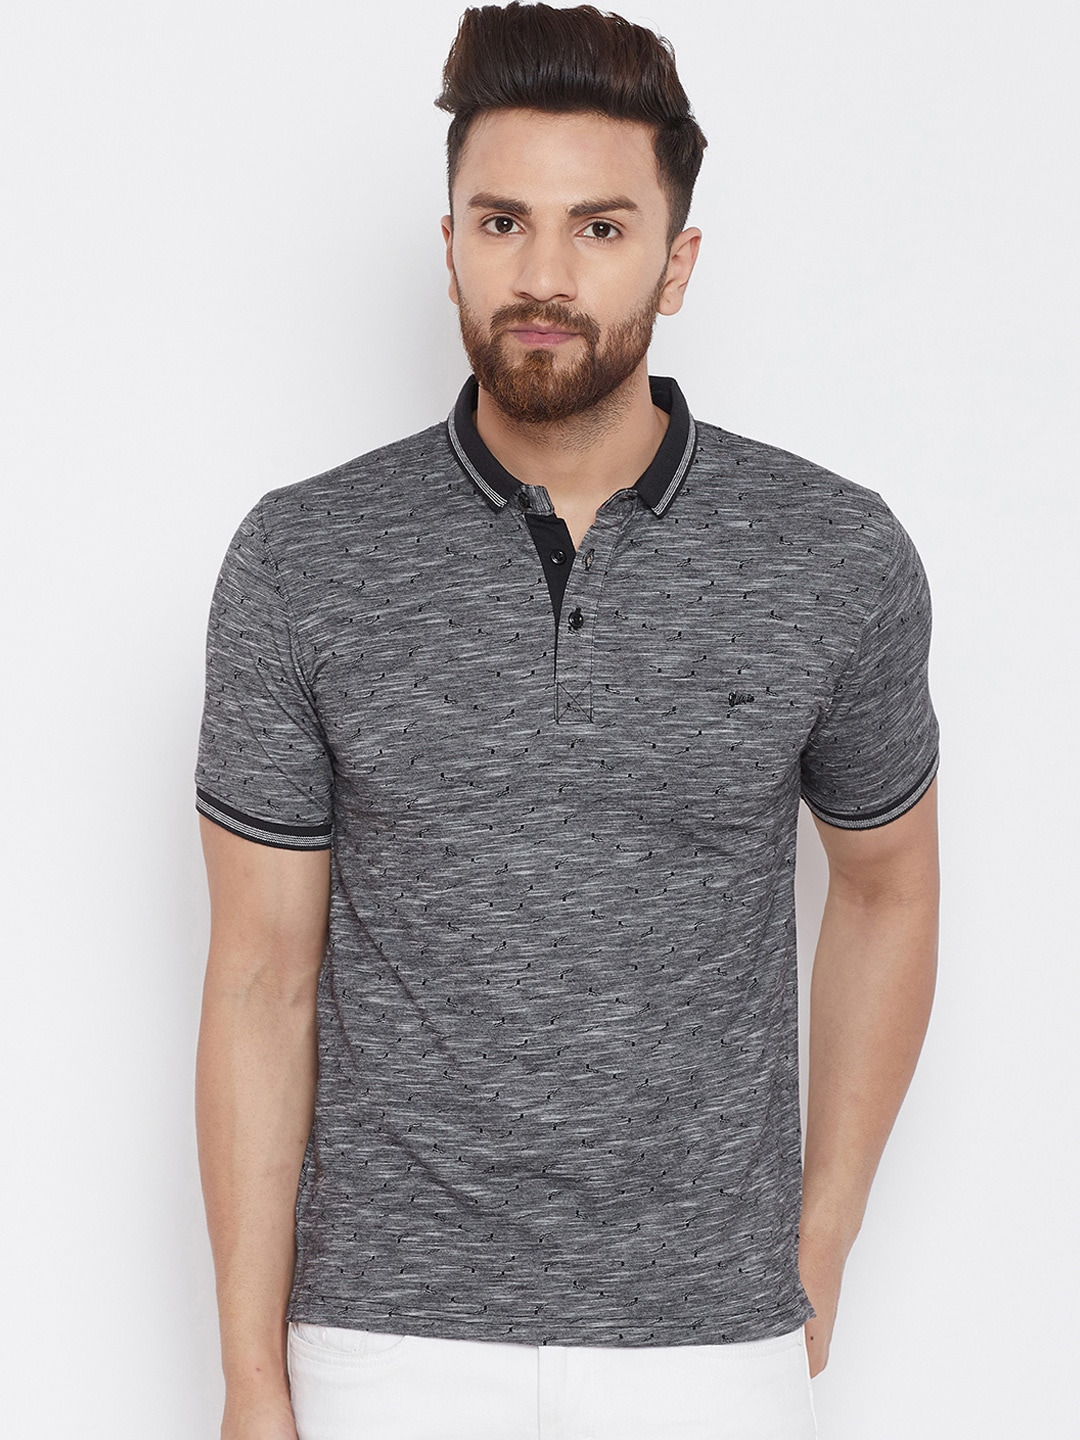 6ed06437 Mens Clothing - Buy Clothing for Men Online in India | Myntra